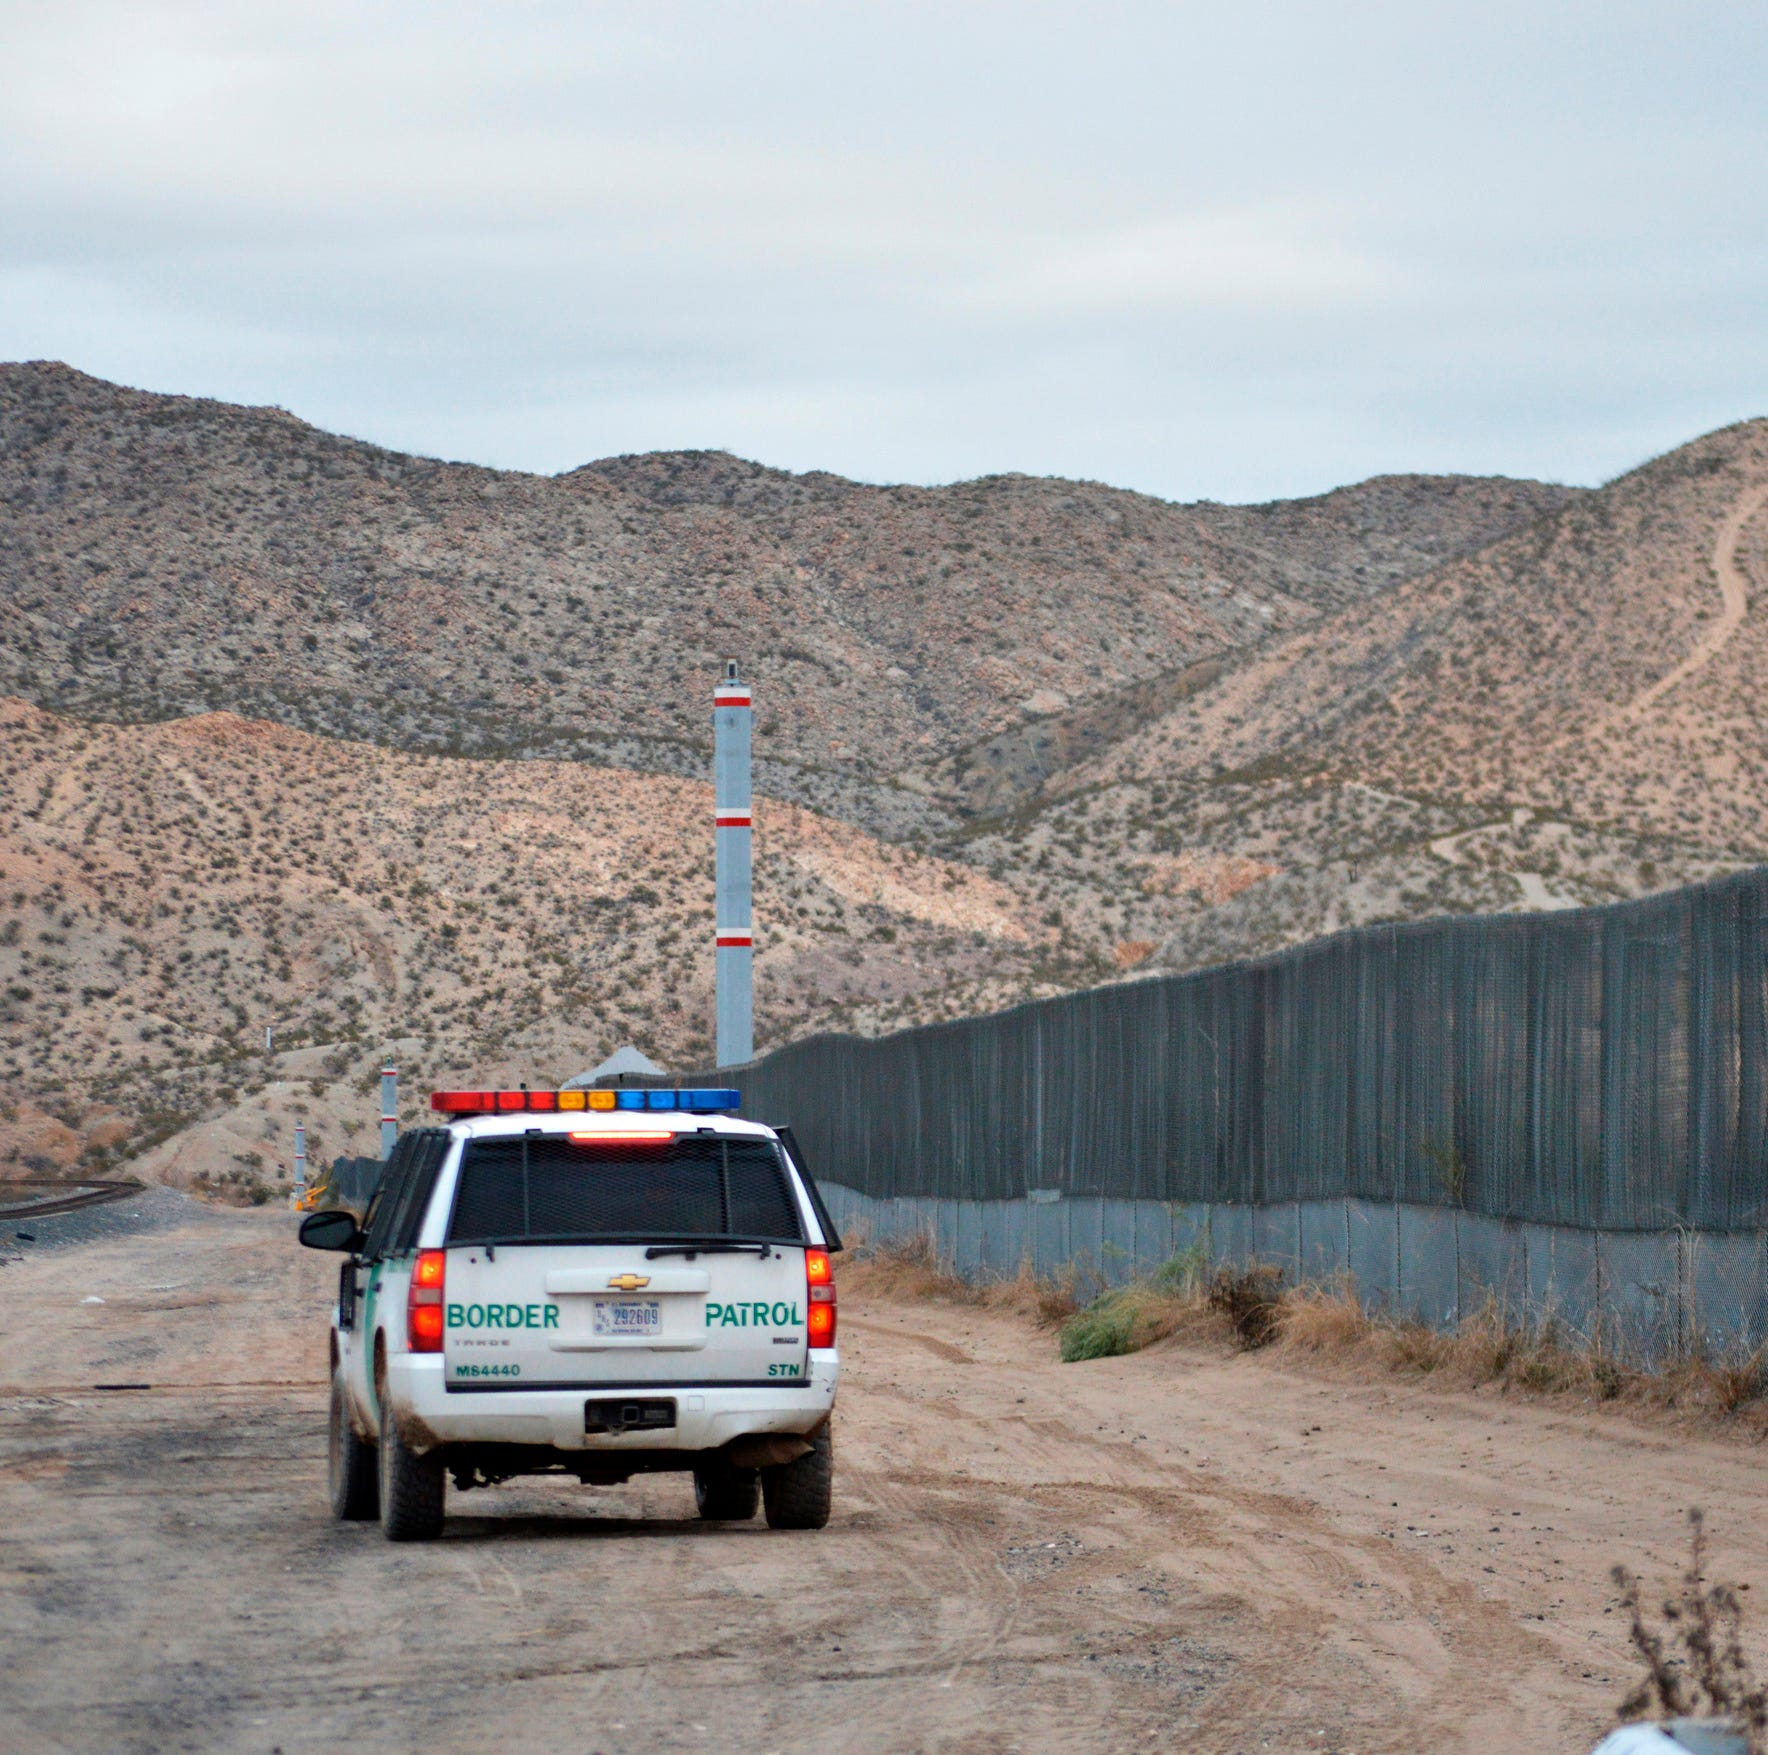 Most Americans believe border wall issue not worth government shutdown: Marist poll